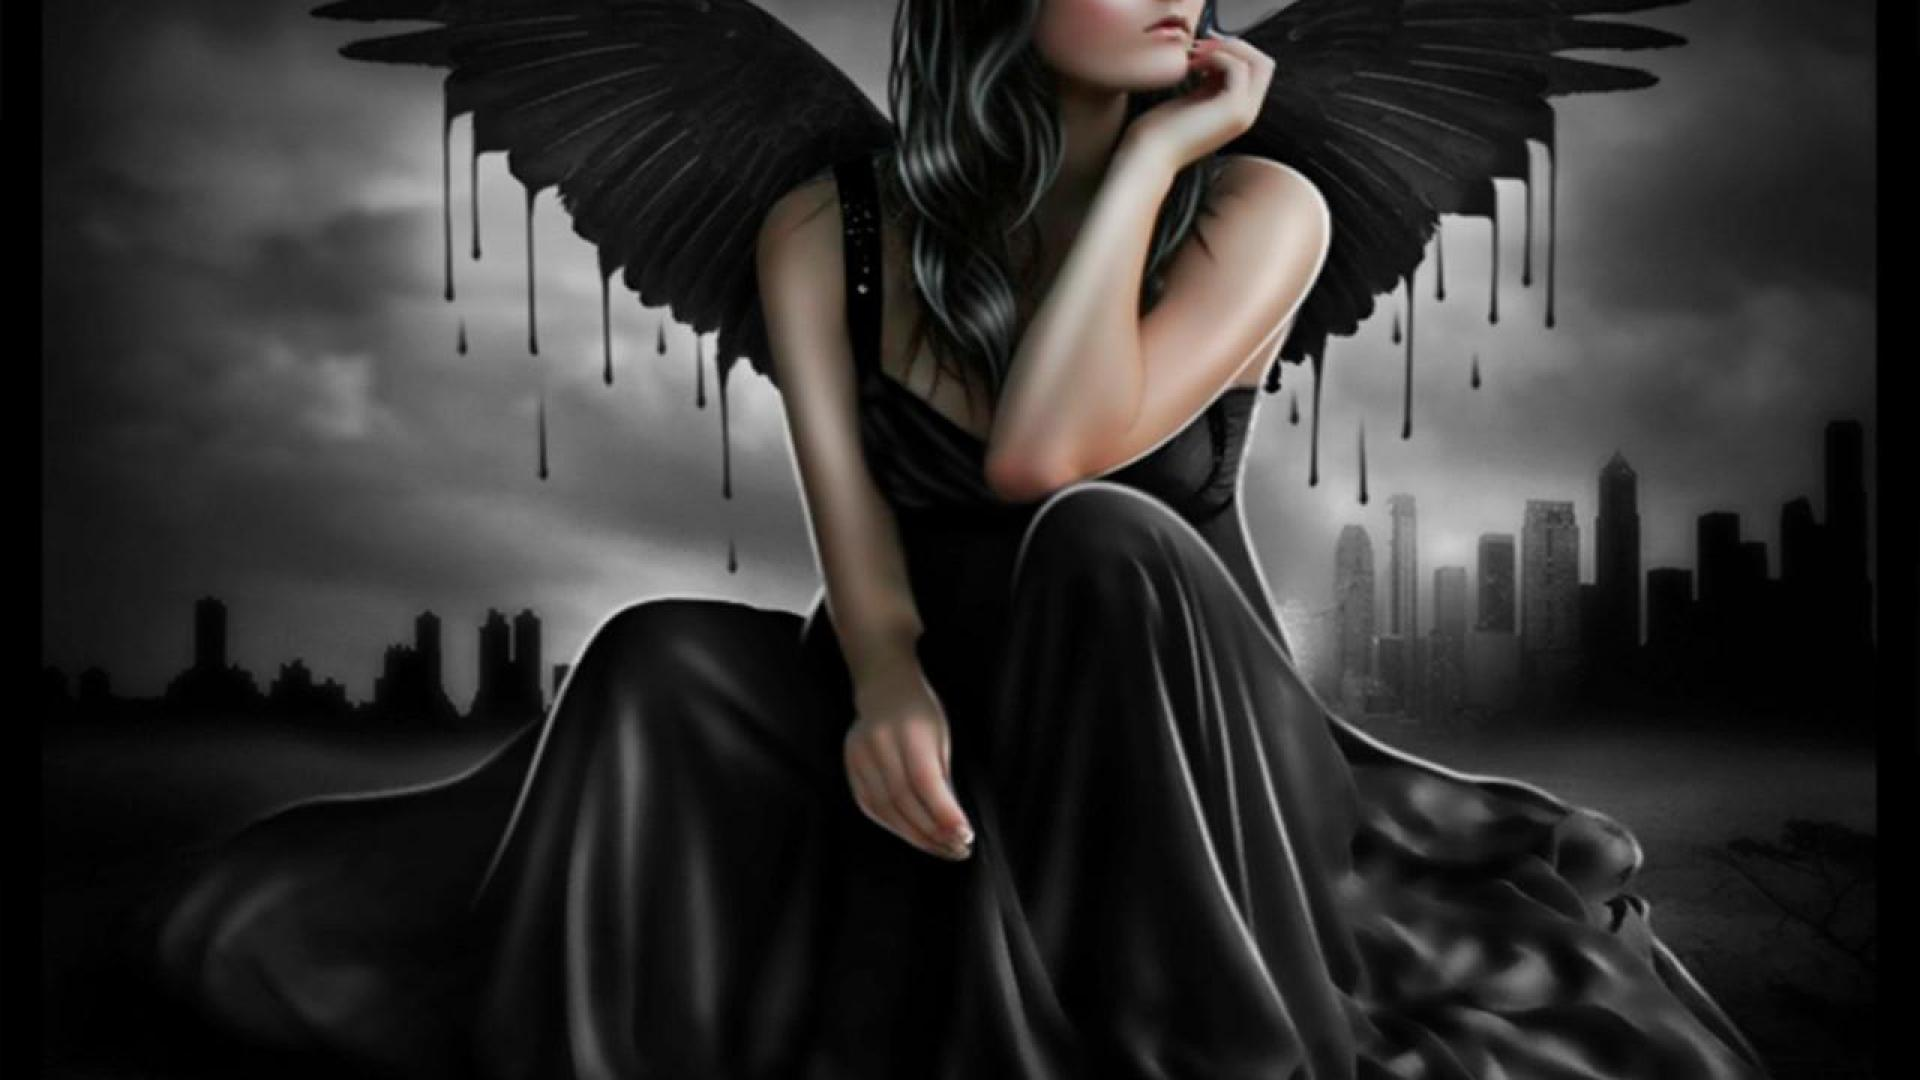 Wallpaper Of Angels Male Hd Posted By Zoey Simpson